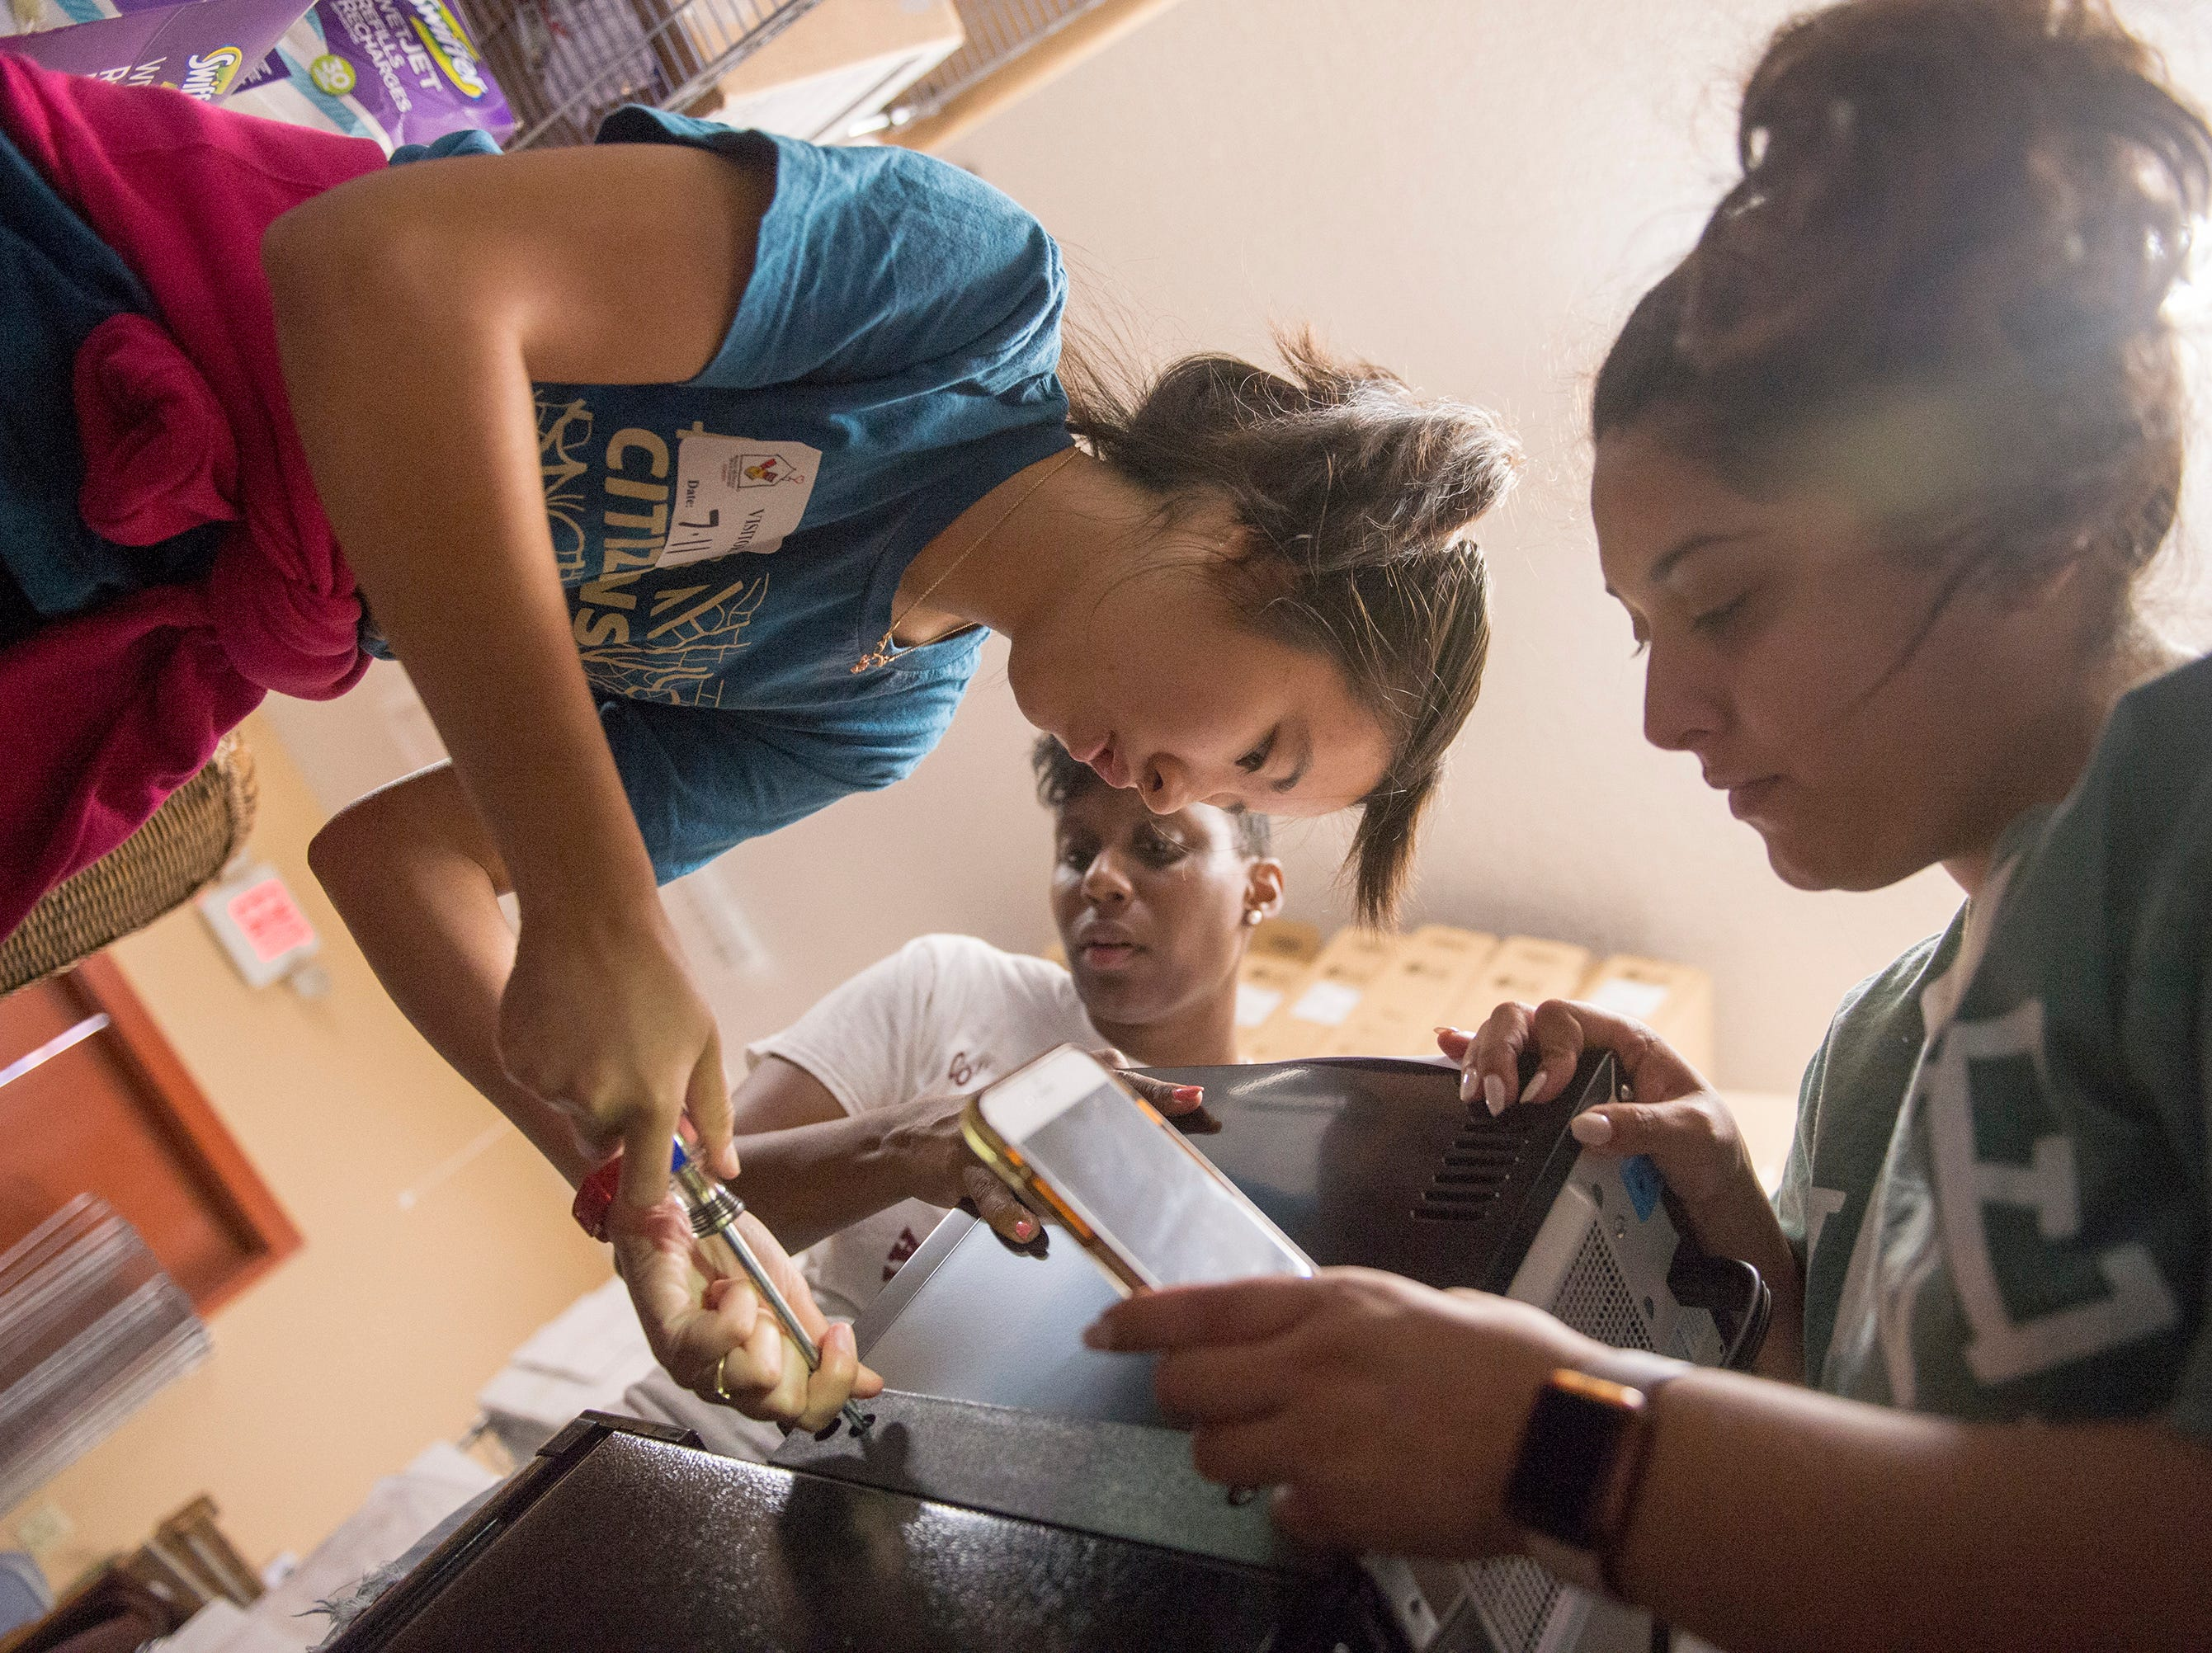 July 11, 2018 - Student volunteers Homerose Uy, left, and Vanessa Brisman, right, work with Memphis Medical District Collaborative organizer Larissa Thompson, center, to assemble combination refrigerator-microwaves for patient families at Ronald McDonald House.